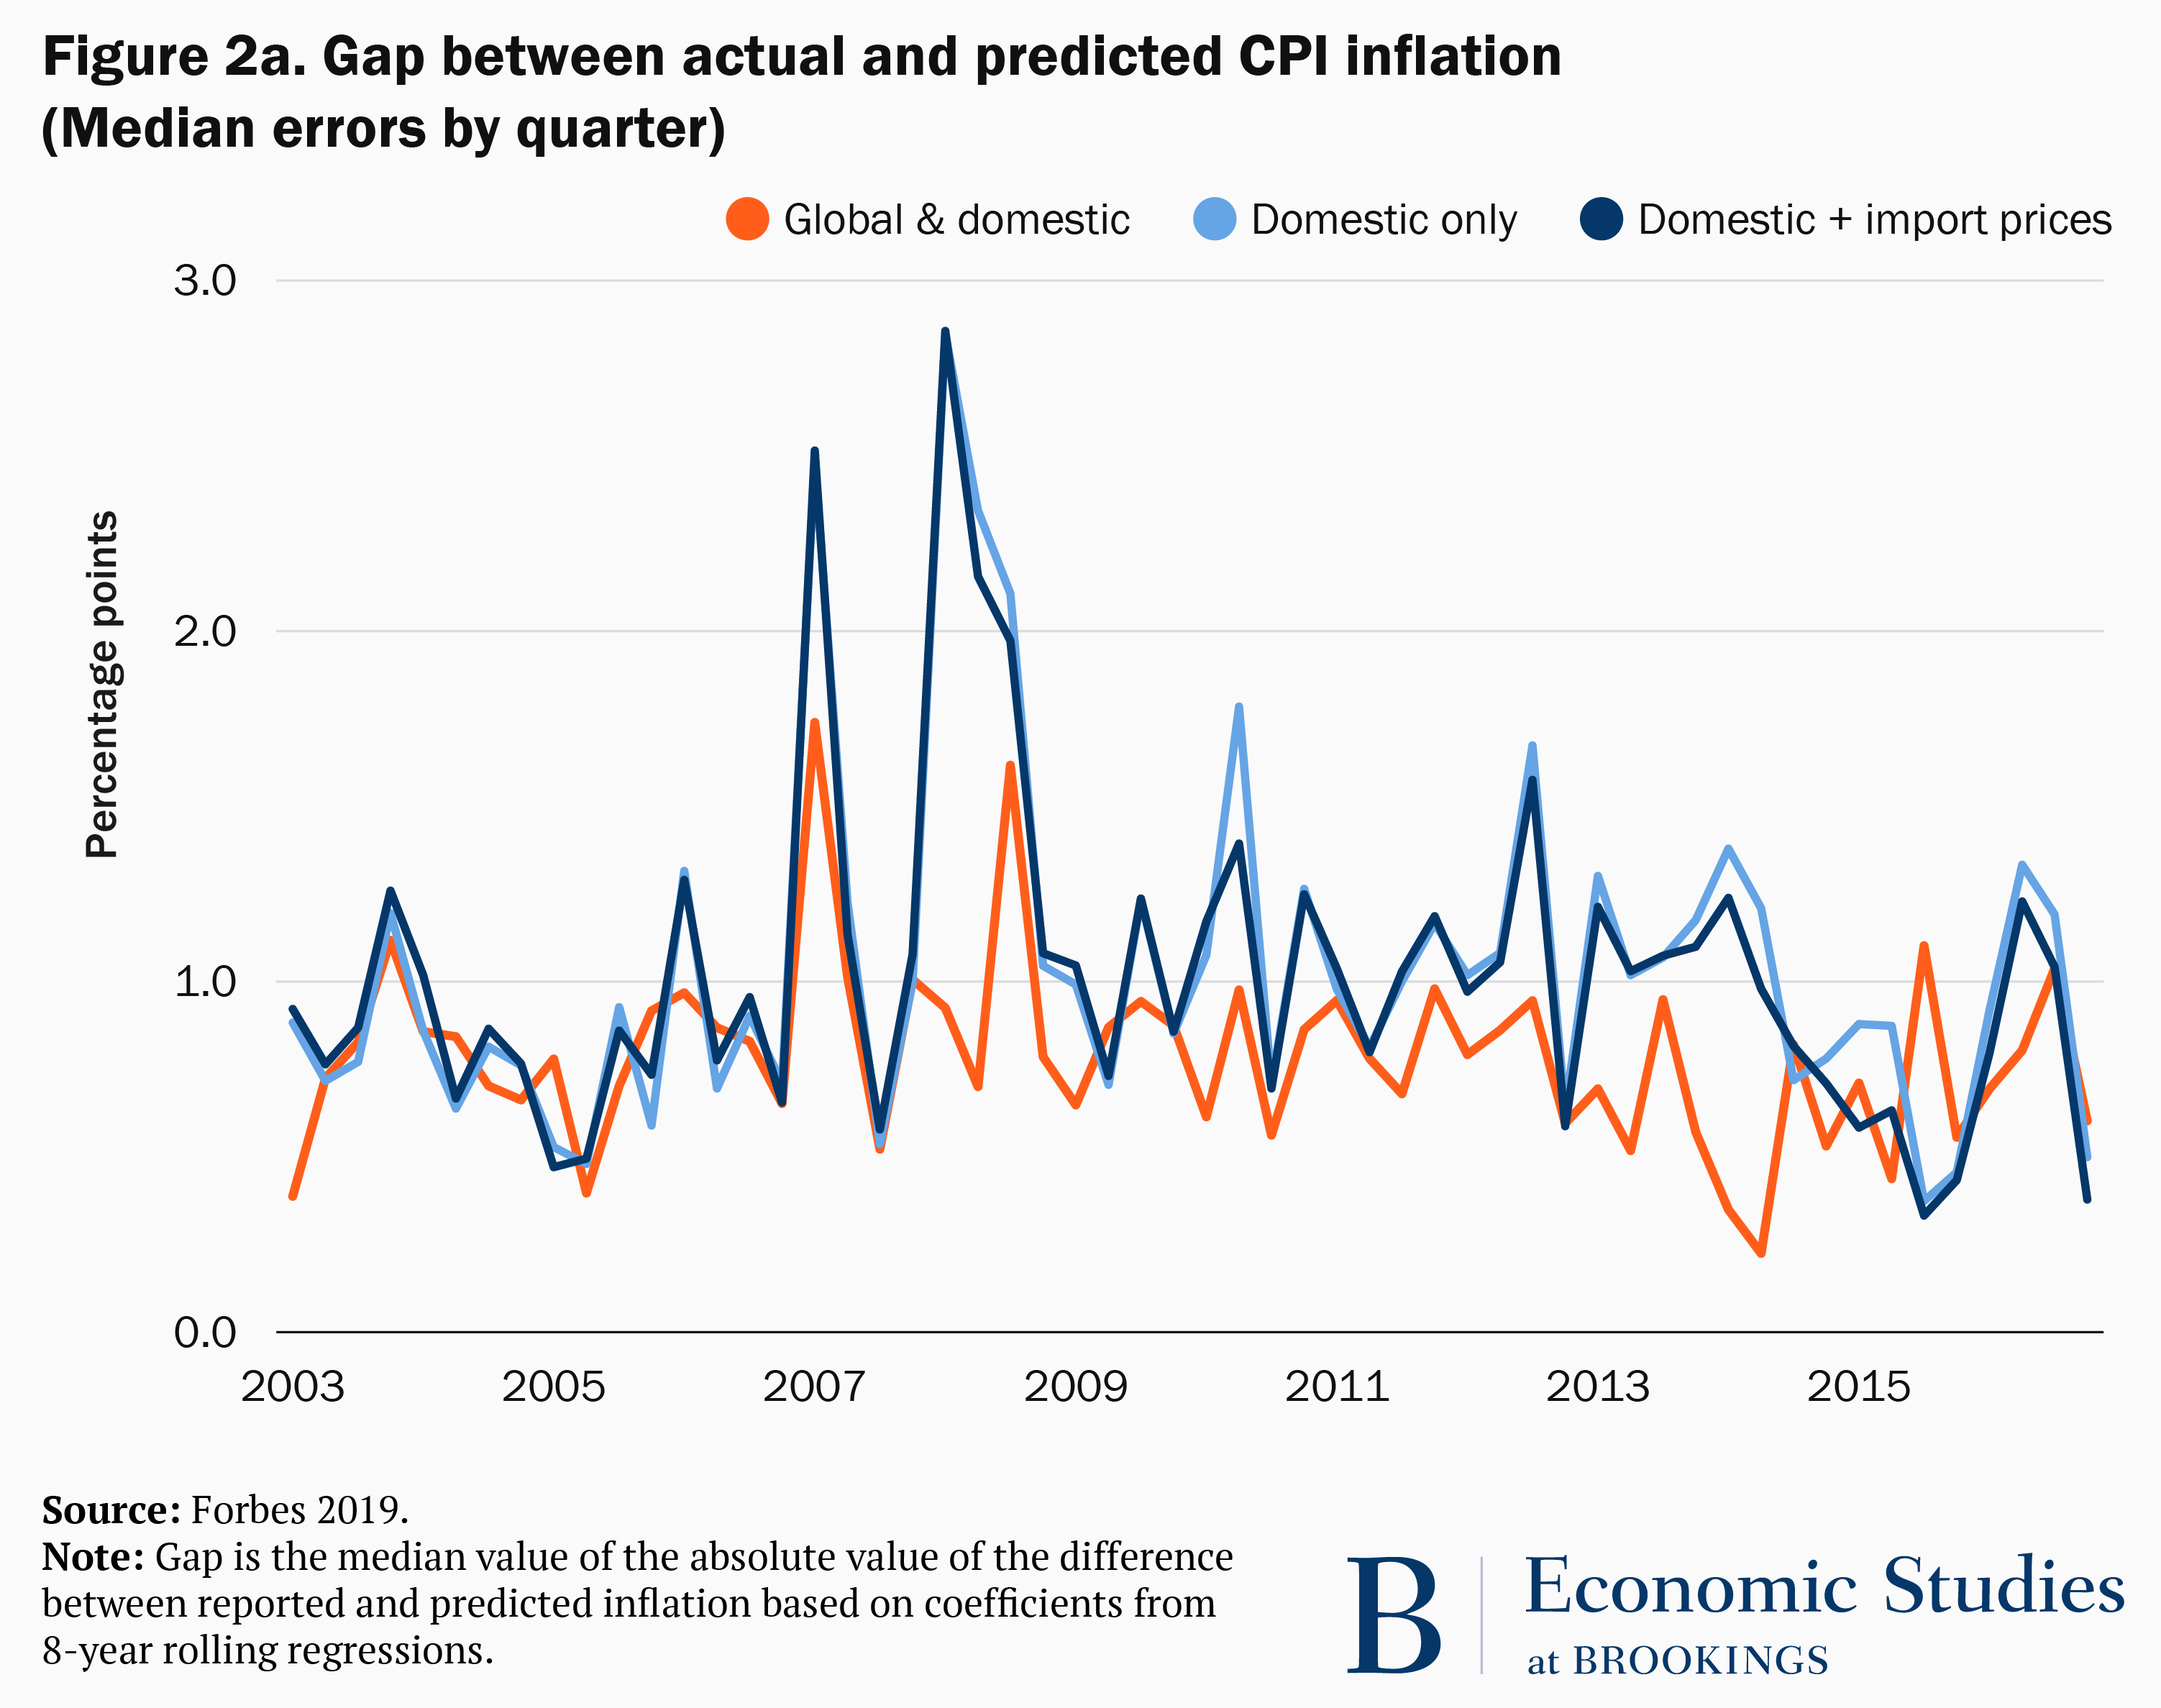 Figure 2a. Gap between actual and predicted CPI inflation